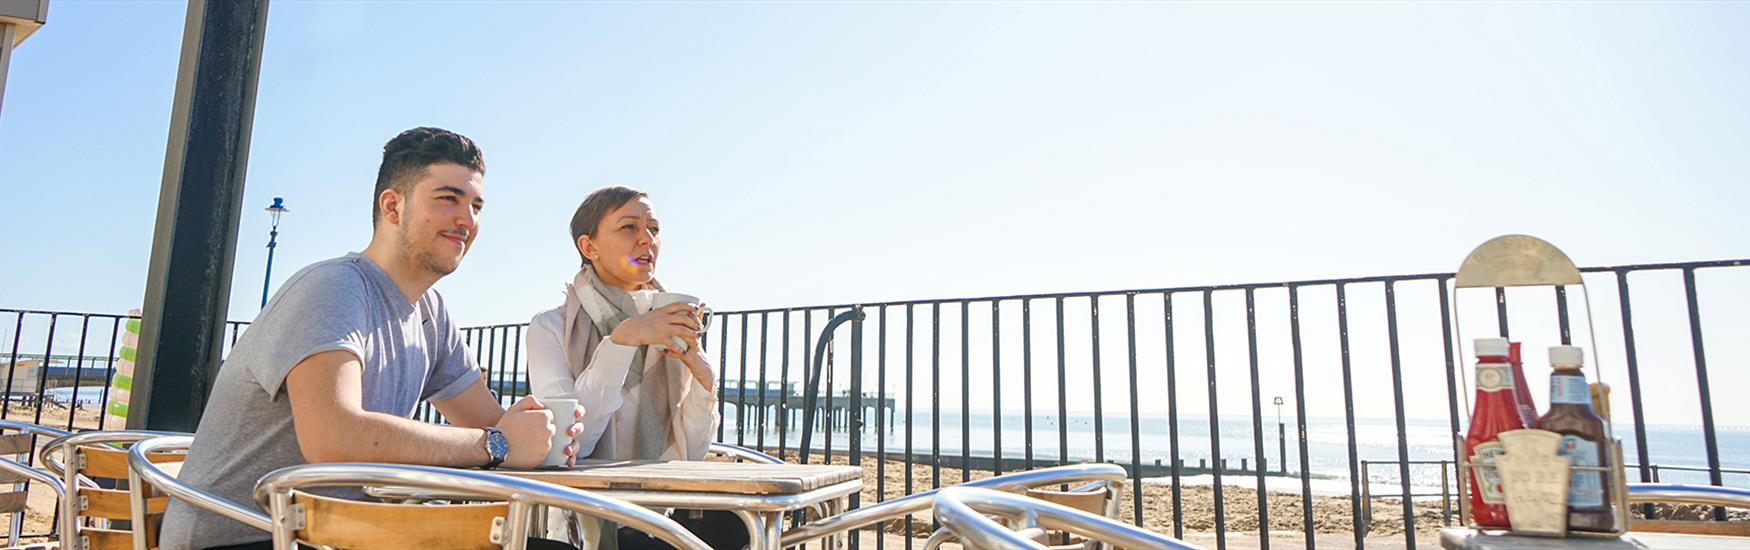 Man and woman holding a coffee and eating food overlooking the sea and pier